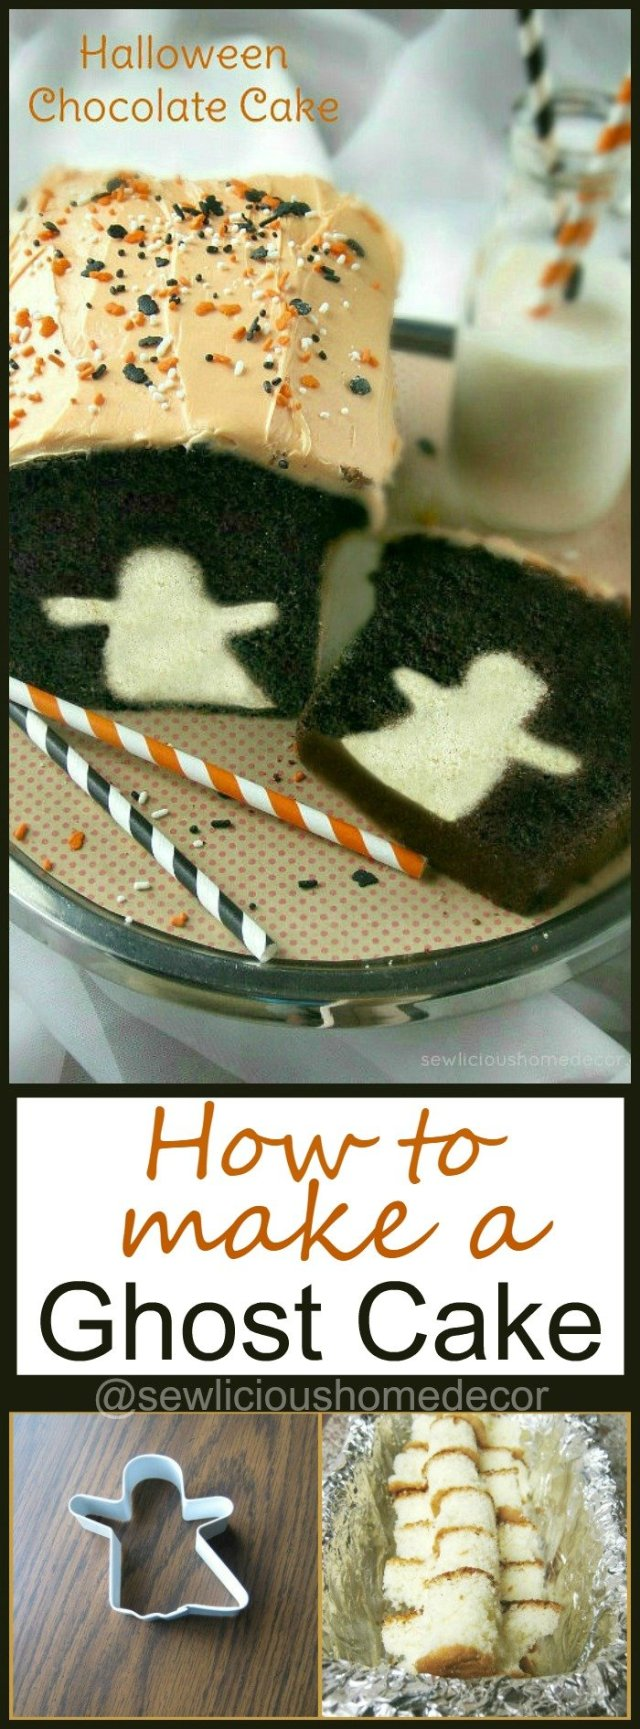 How To Make A Halloween Ghost Cake sewlicioushomedecor.com